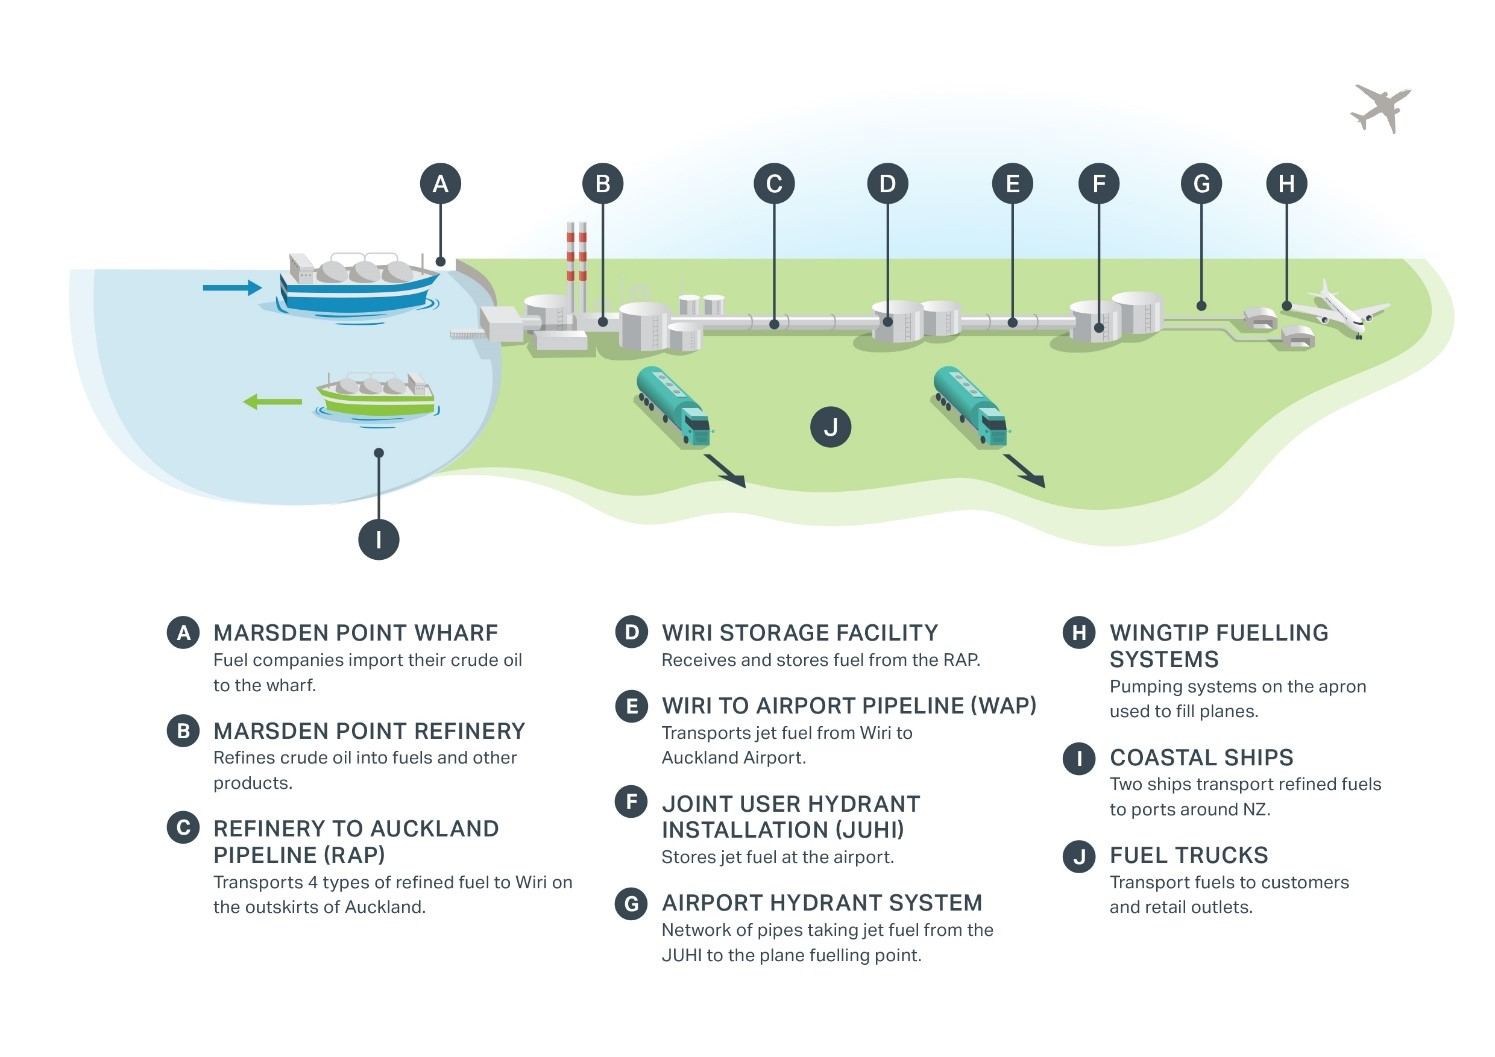 Diagram showing the fuel supply chain for Auckland Airport, crude oil being imported by ship through to being pumped to a plane: a) Marsden Point wharf – Fuel companies import the crude oil to the wharf b) Marsden Point refinery – Refines crude oil into fuels and other products c) Refinery to Auckland pipeline (RAP) – Transports 4 types of refined fuel to Wiri on the outskirts of Auckland d) Wiri storage facility – Receives and stores fuel from RAP e) Wiri to Airport pipeline (WAP) – Transports jet fuel from Wiri to Auckland Airport f) Joint user hydrant installation (JUHI) – Stores jet fuel at the airport g) Airport hydrant system – Network of pipes taking jet fuel from the JUHI to the plane fuelling point h) Wingtip fuelling systems – Pumping systems on the apron used to fill planes i) Coastal ships – Two ships transport refined fuels to ports around NZ j) Fuel trucks – Transport fuels to customers and retail outlets.